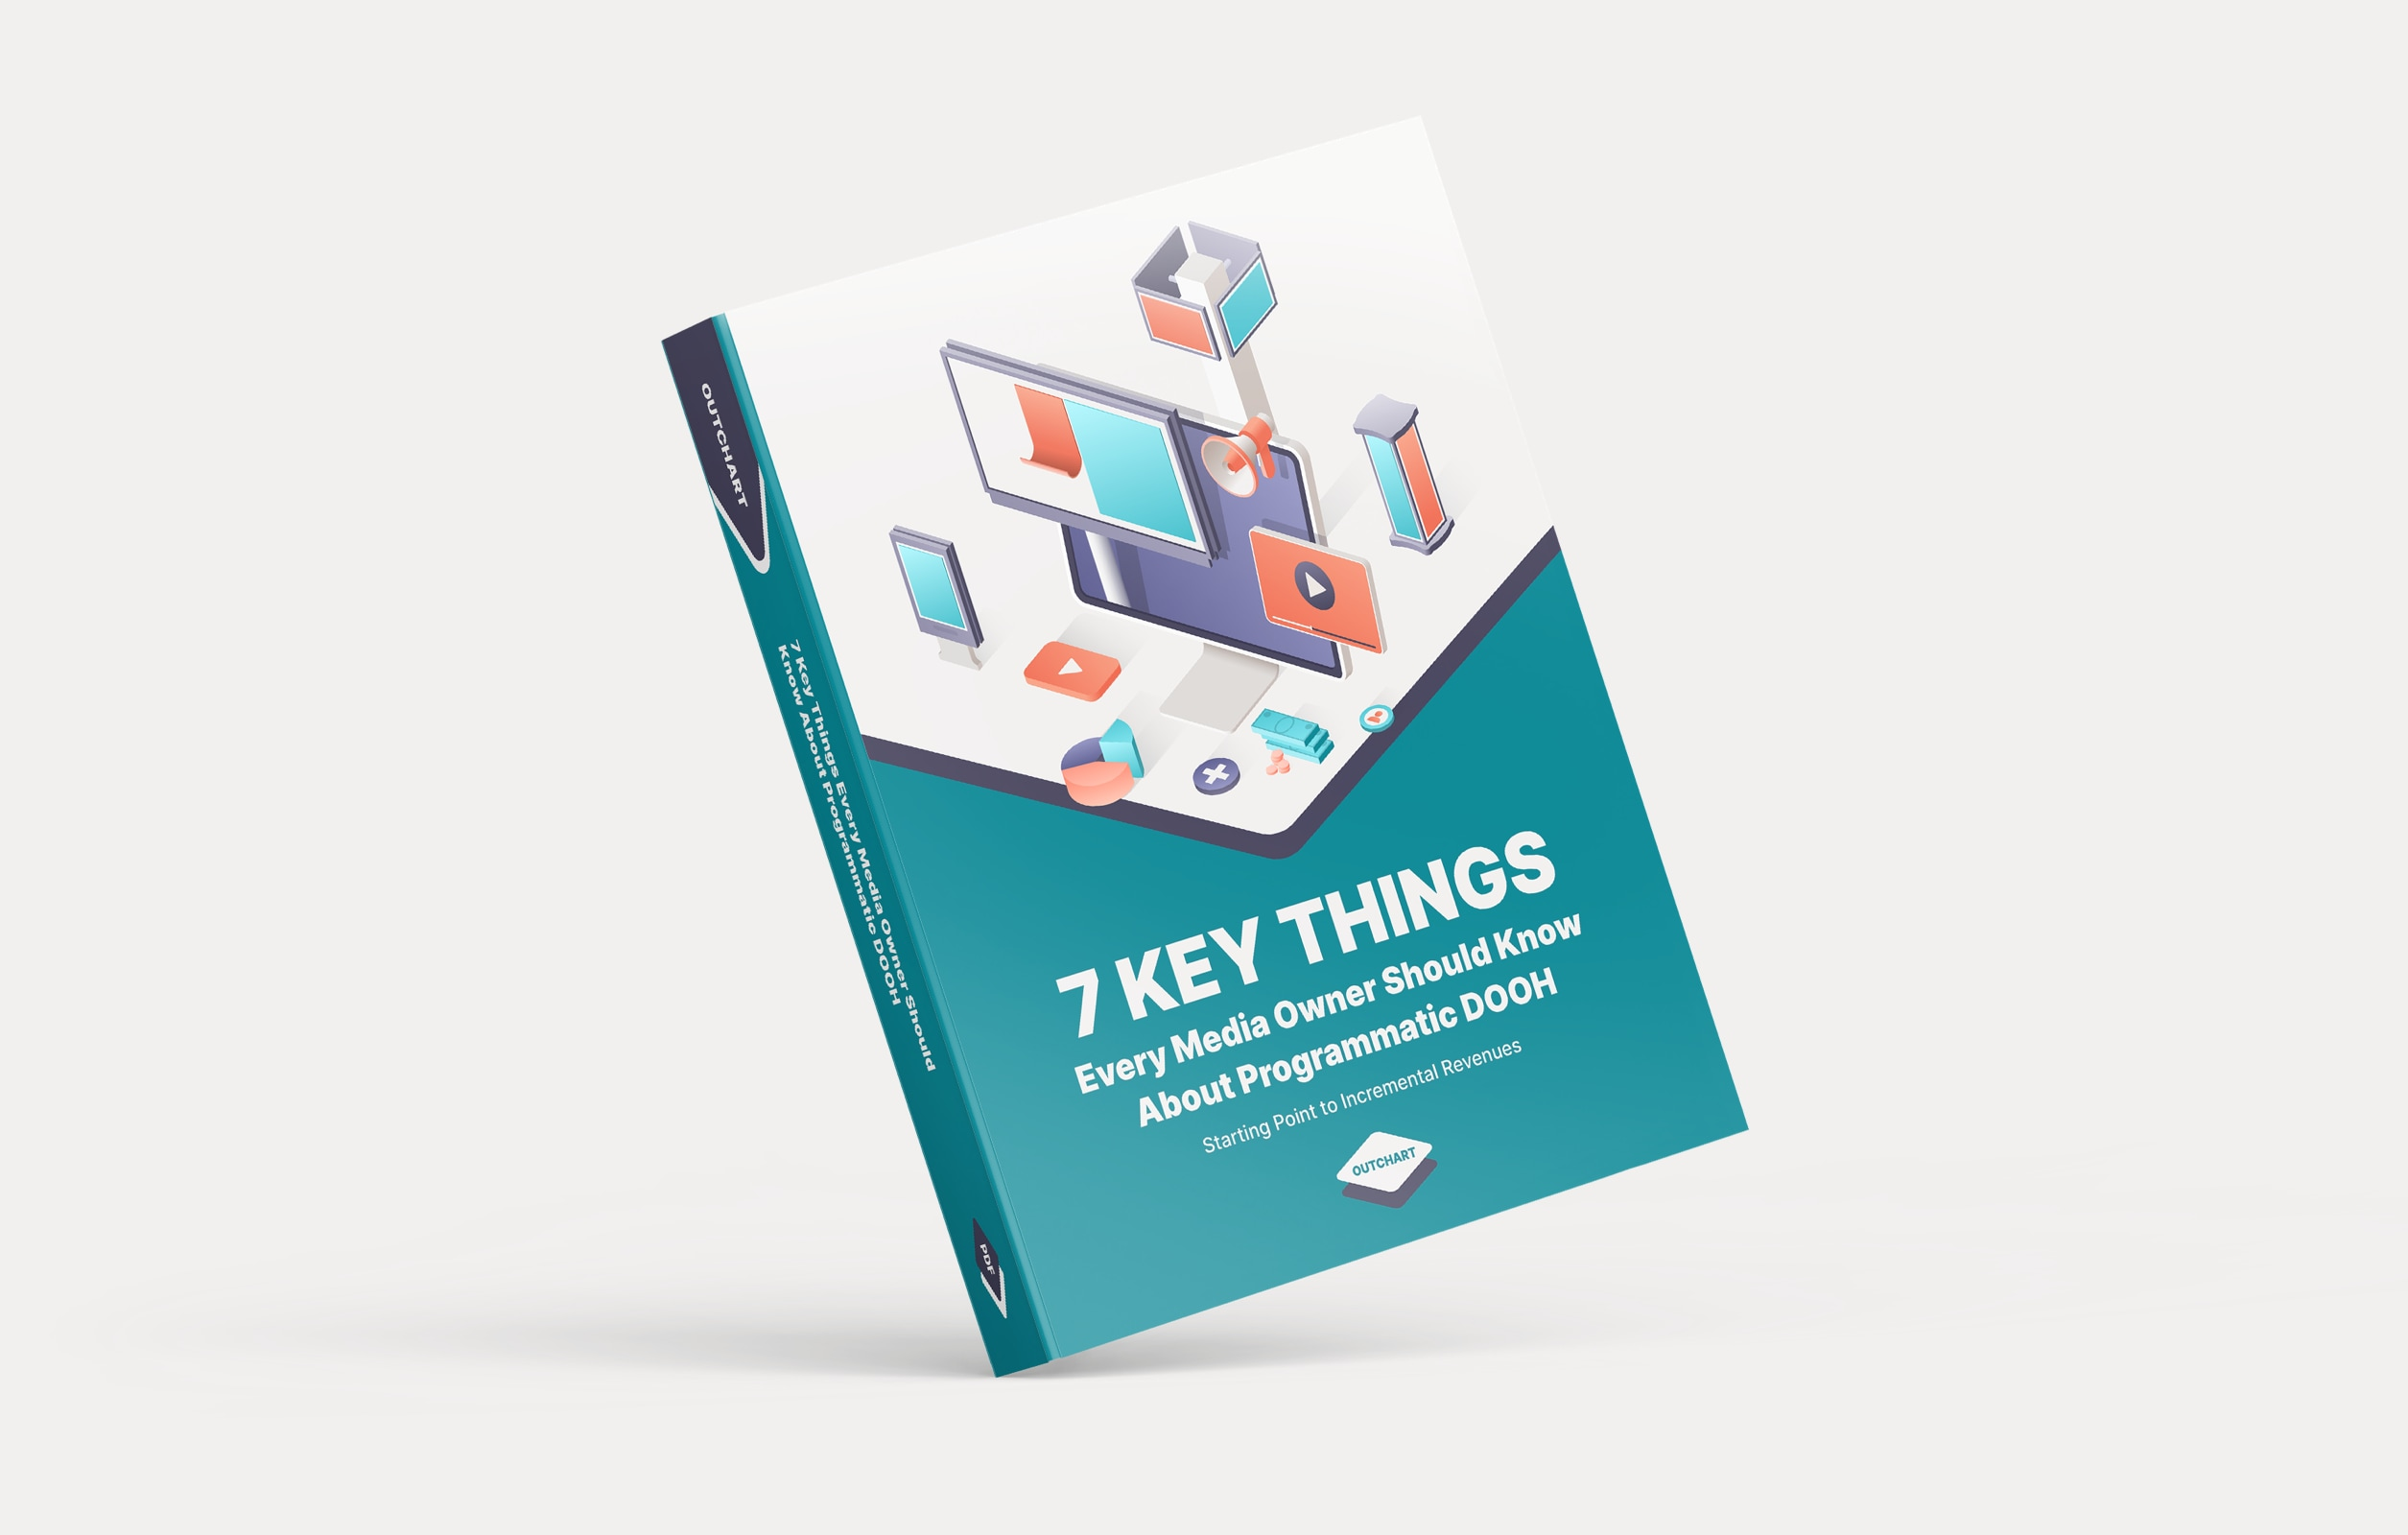 Outchart Book «7 Key Things Every Media OwnerShould Know About Programmatic DOOH»